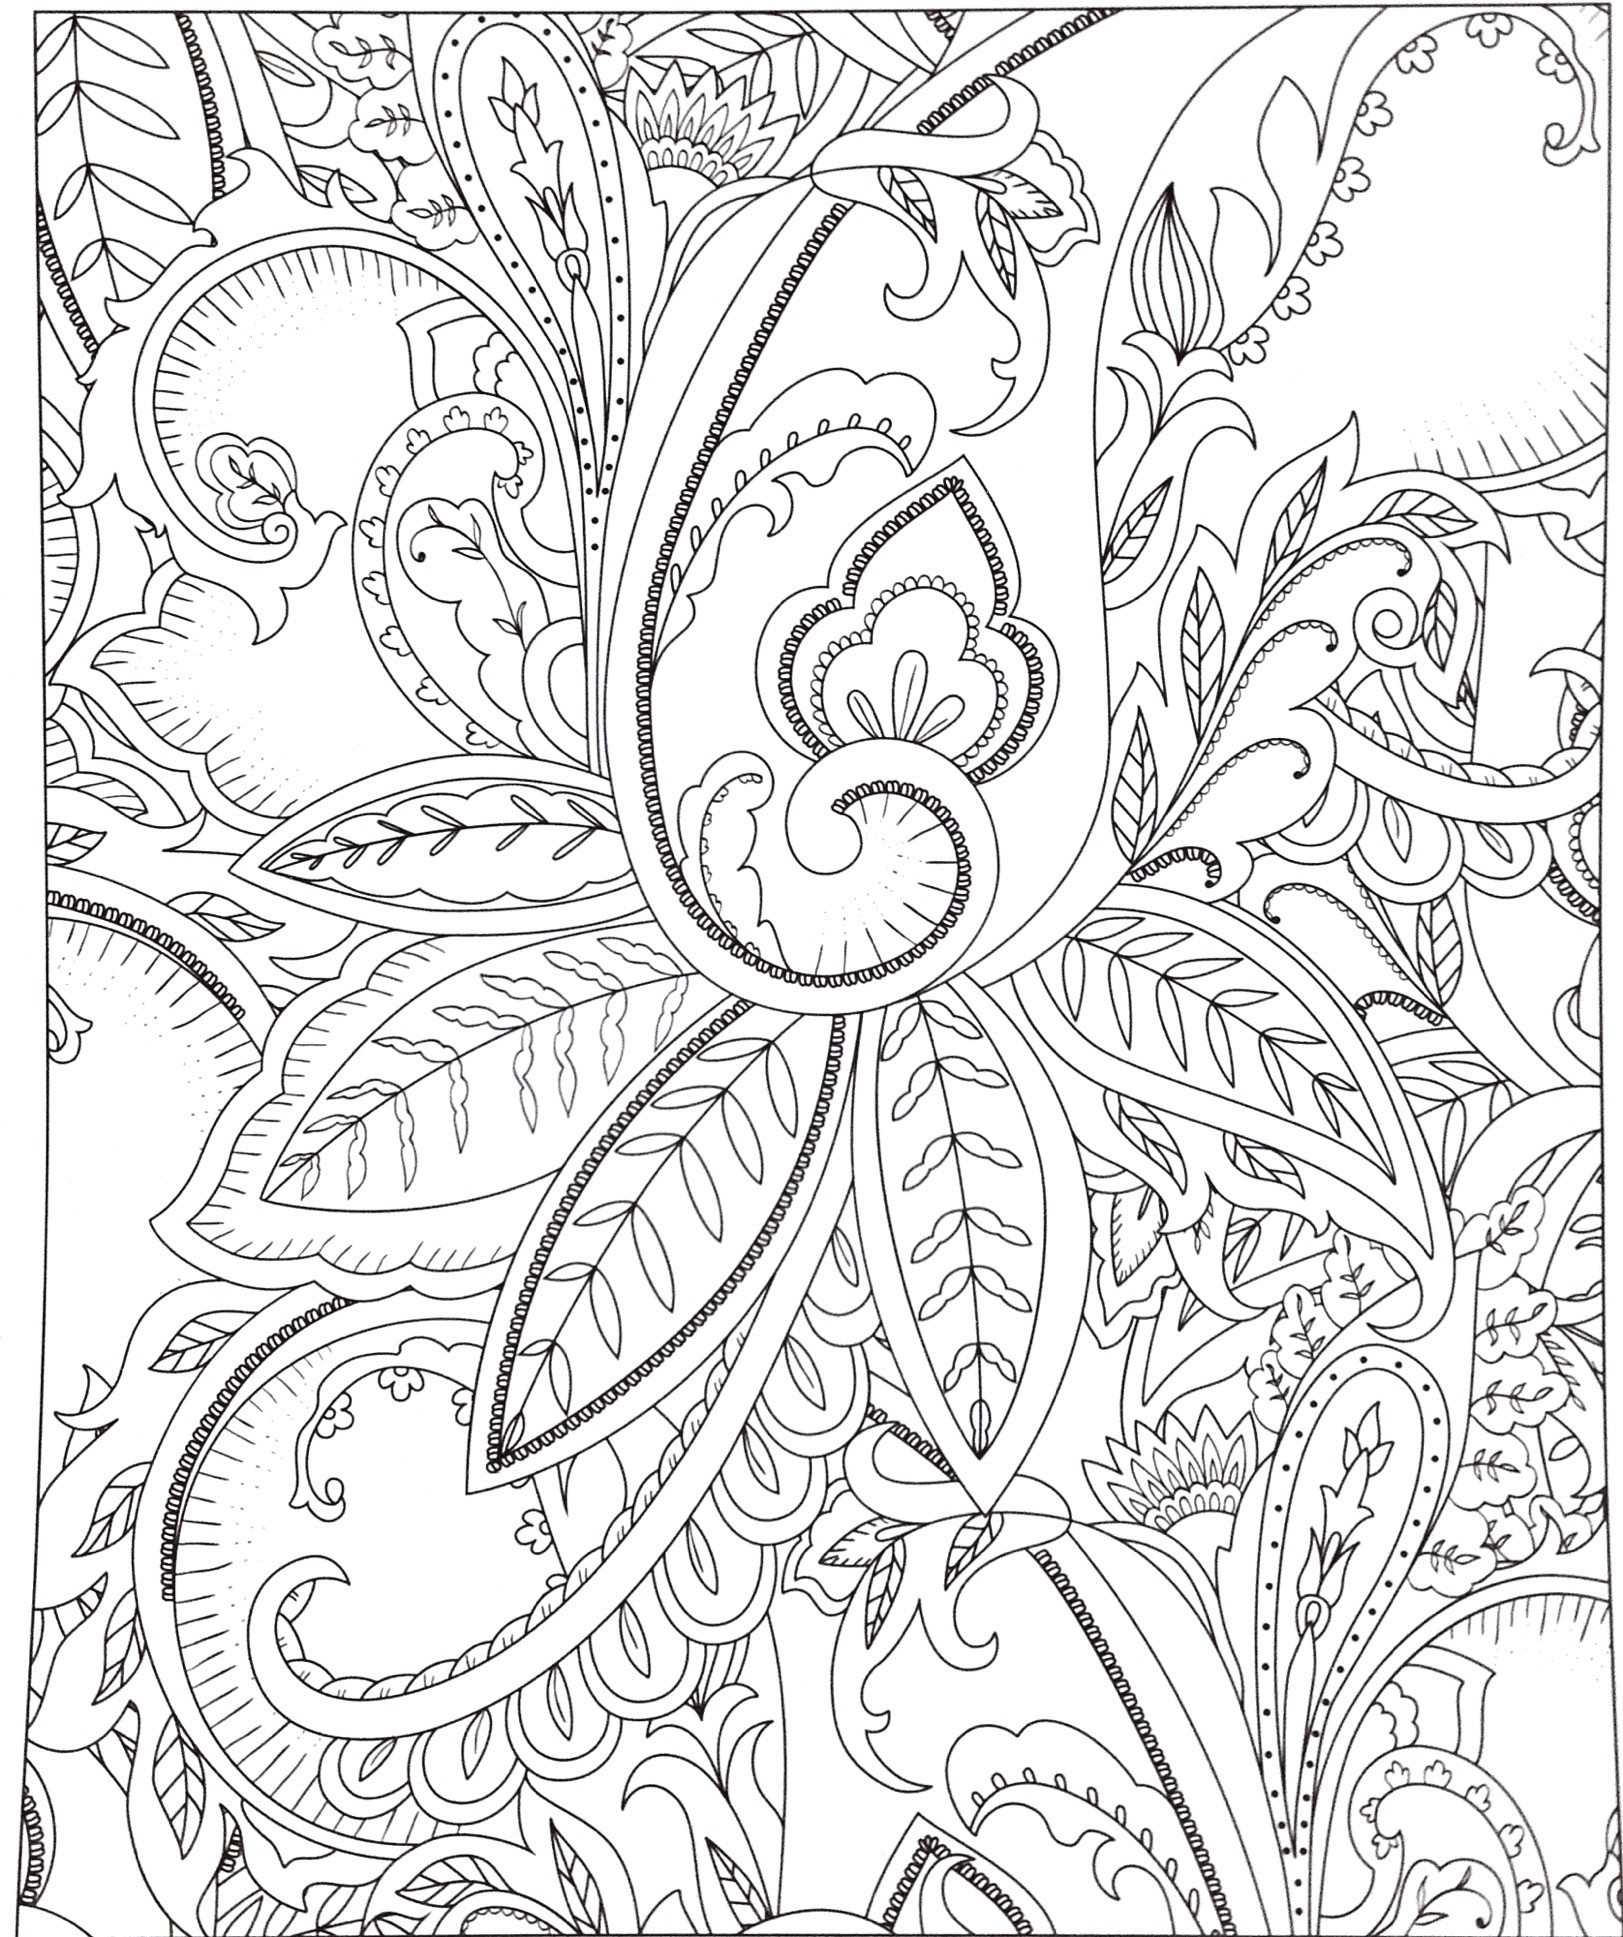 Alabama Coloring Pages Printable  Download 14k - Free For Children